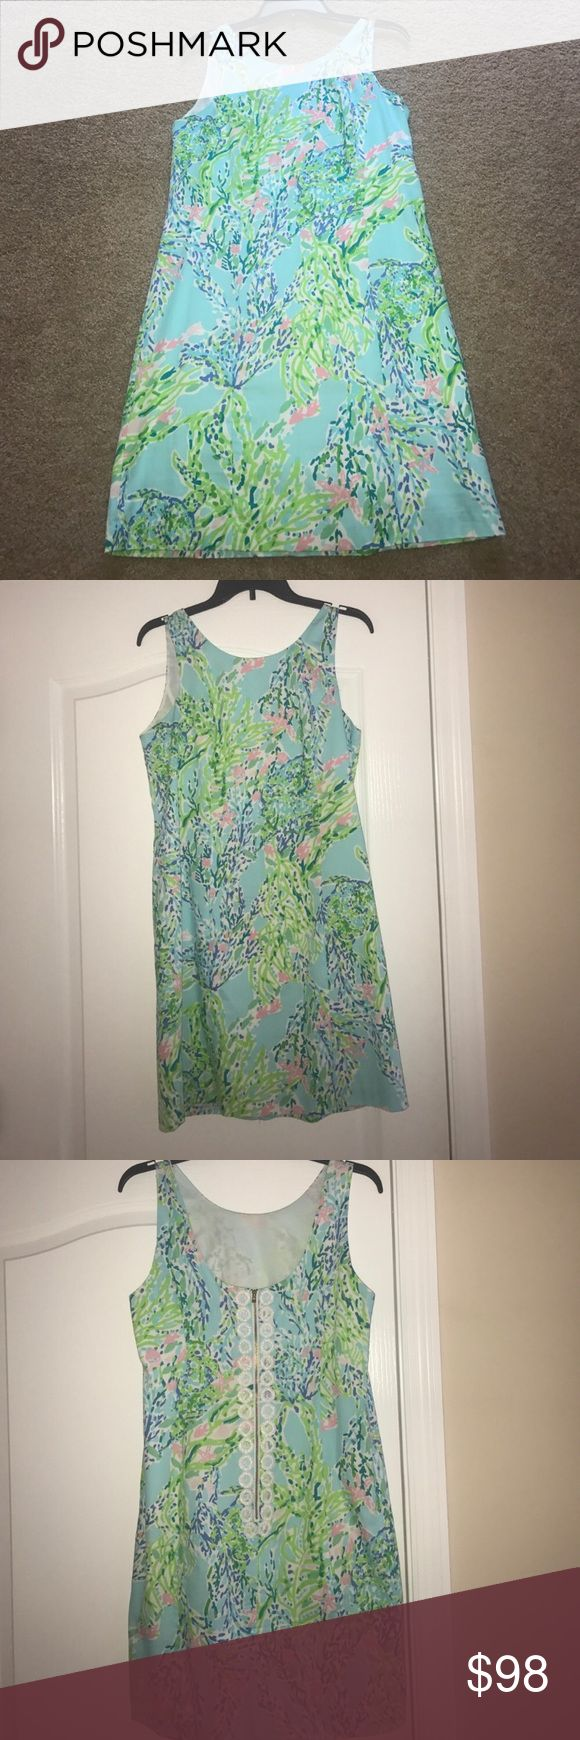 💙 LILLY PULITZER SHIFT DRESS 💙 Perfect Skye Blue Heaven LILLY PULITZER DRESS worn once!! In perfect condition! AMAZING DRESS FOR SUMMER! Super flattering shift!💙💙💙🐠🐠 Lilly Pulitzer Dresses Midi